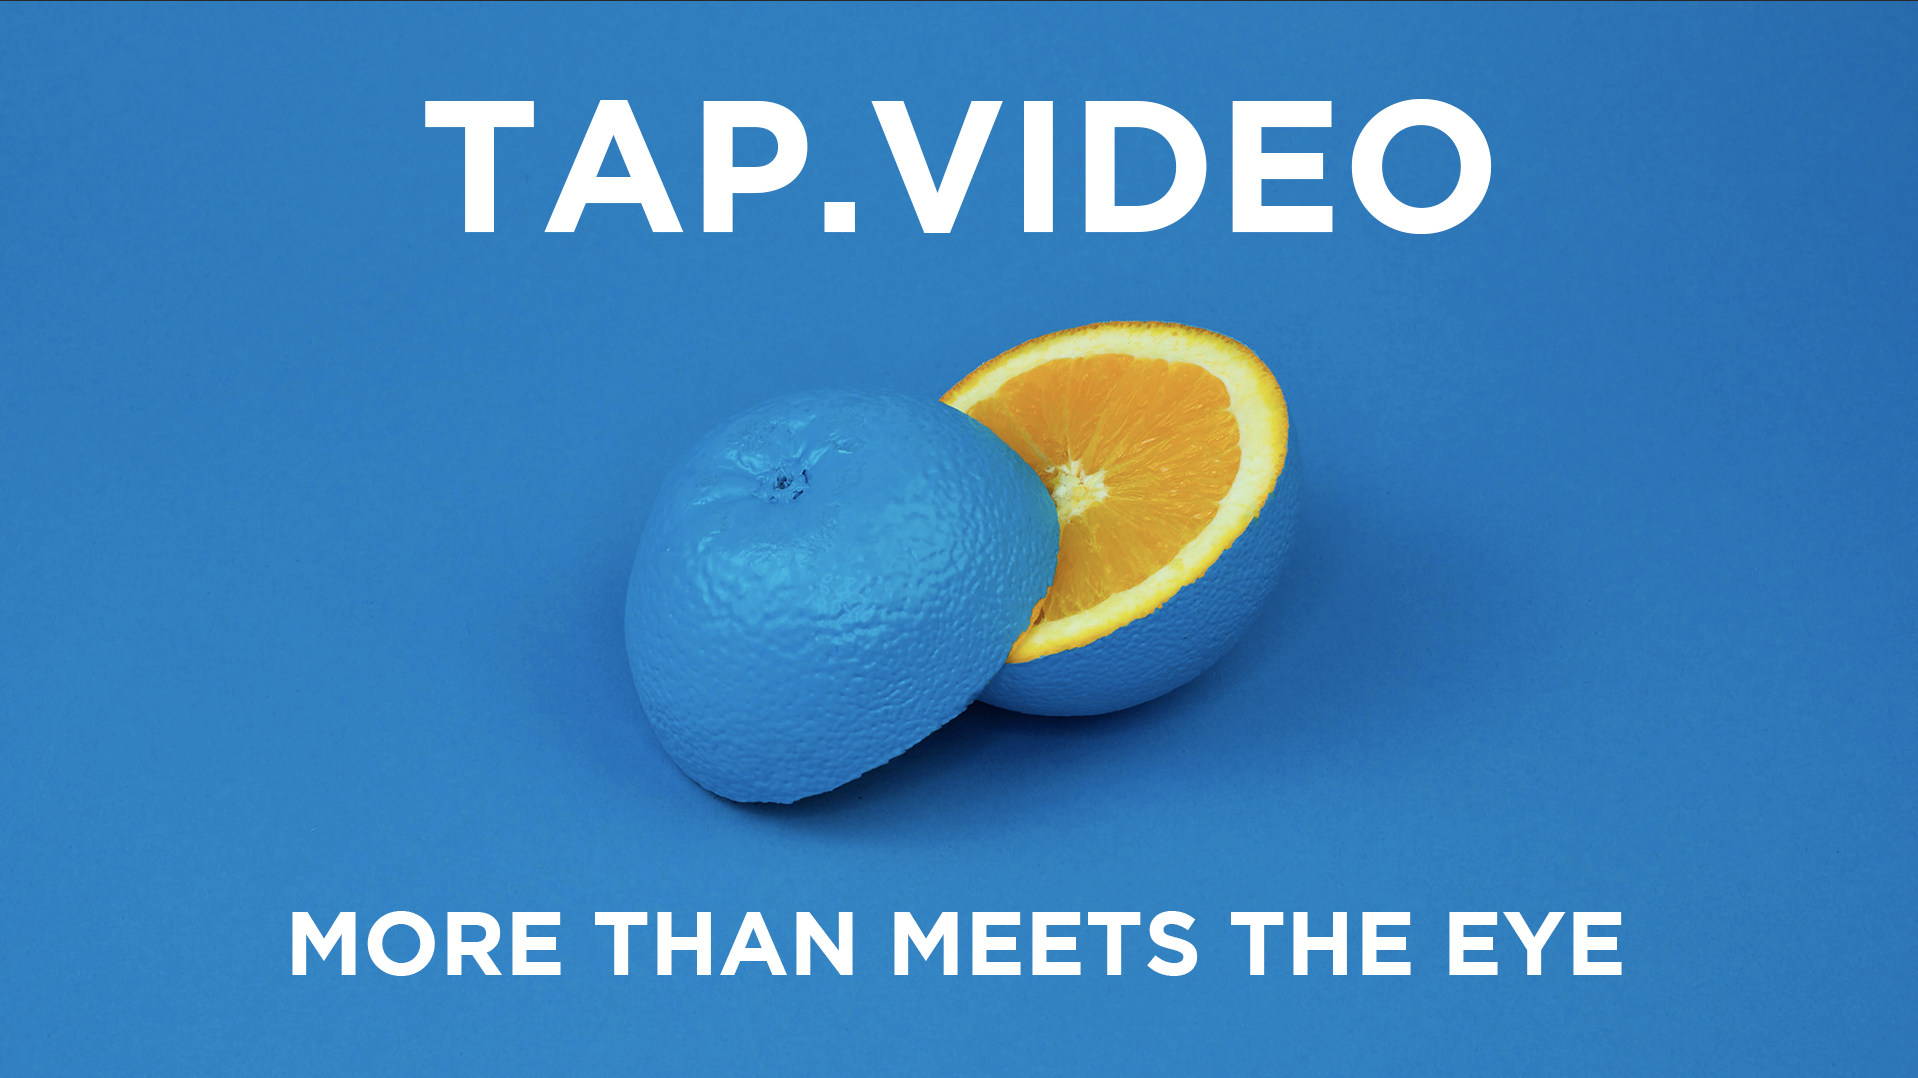 Vancouver Media Technology Company Releases tap.video Platform, Changing Online Video Landscape Globally